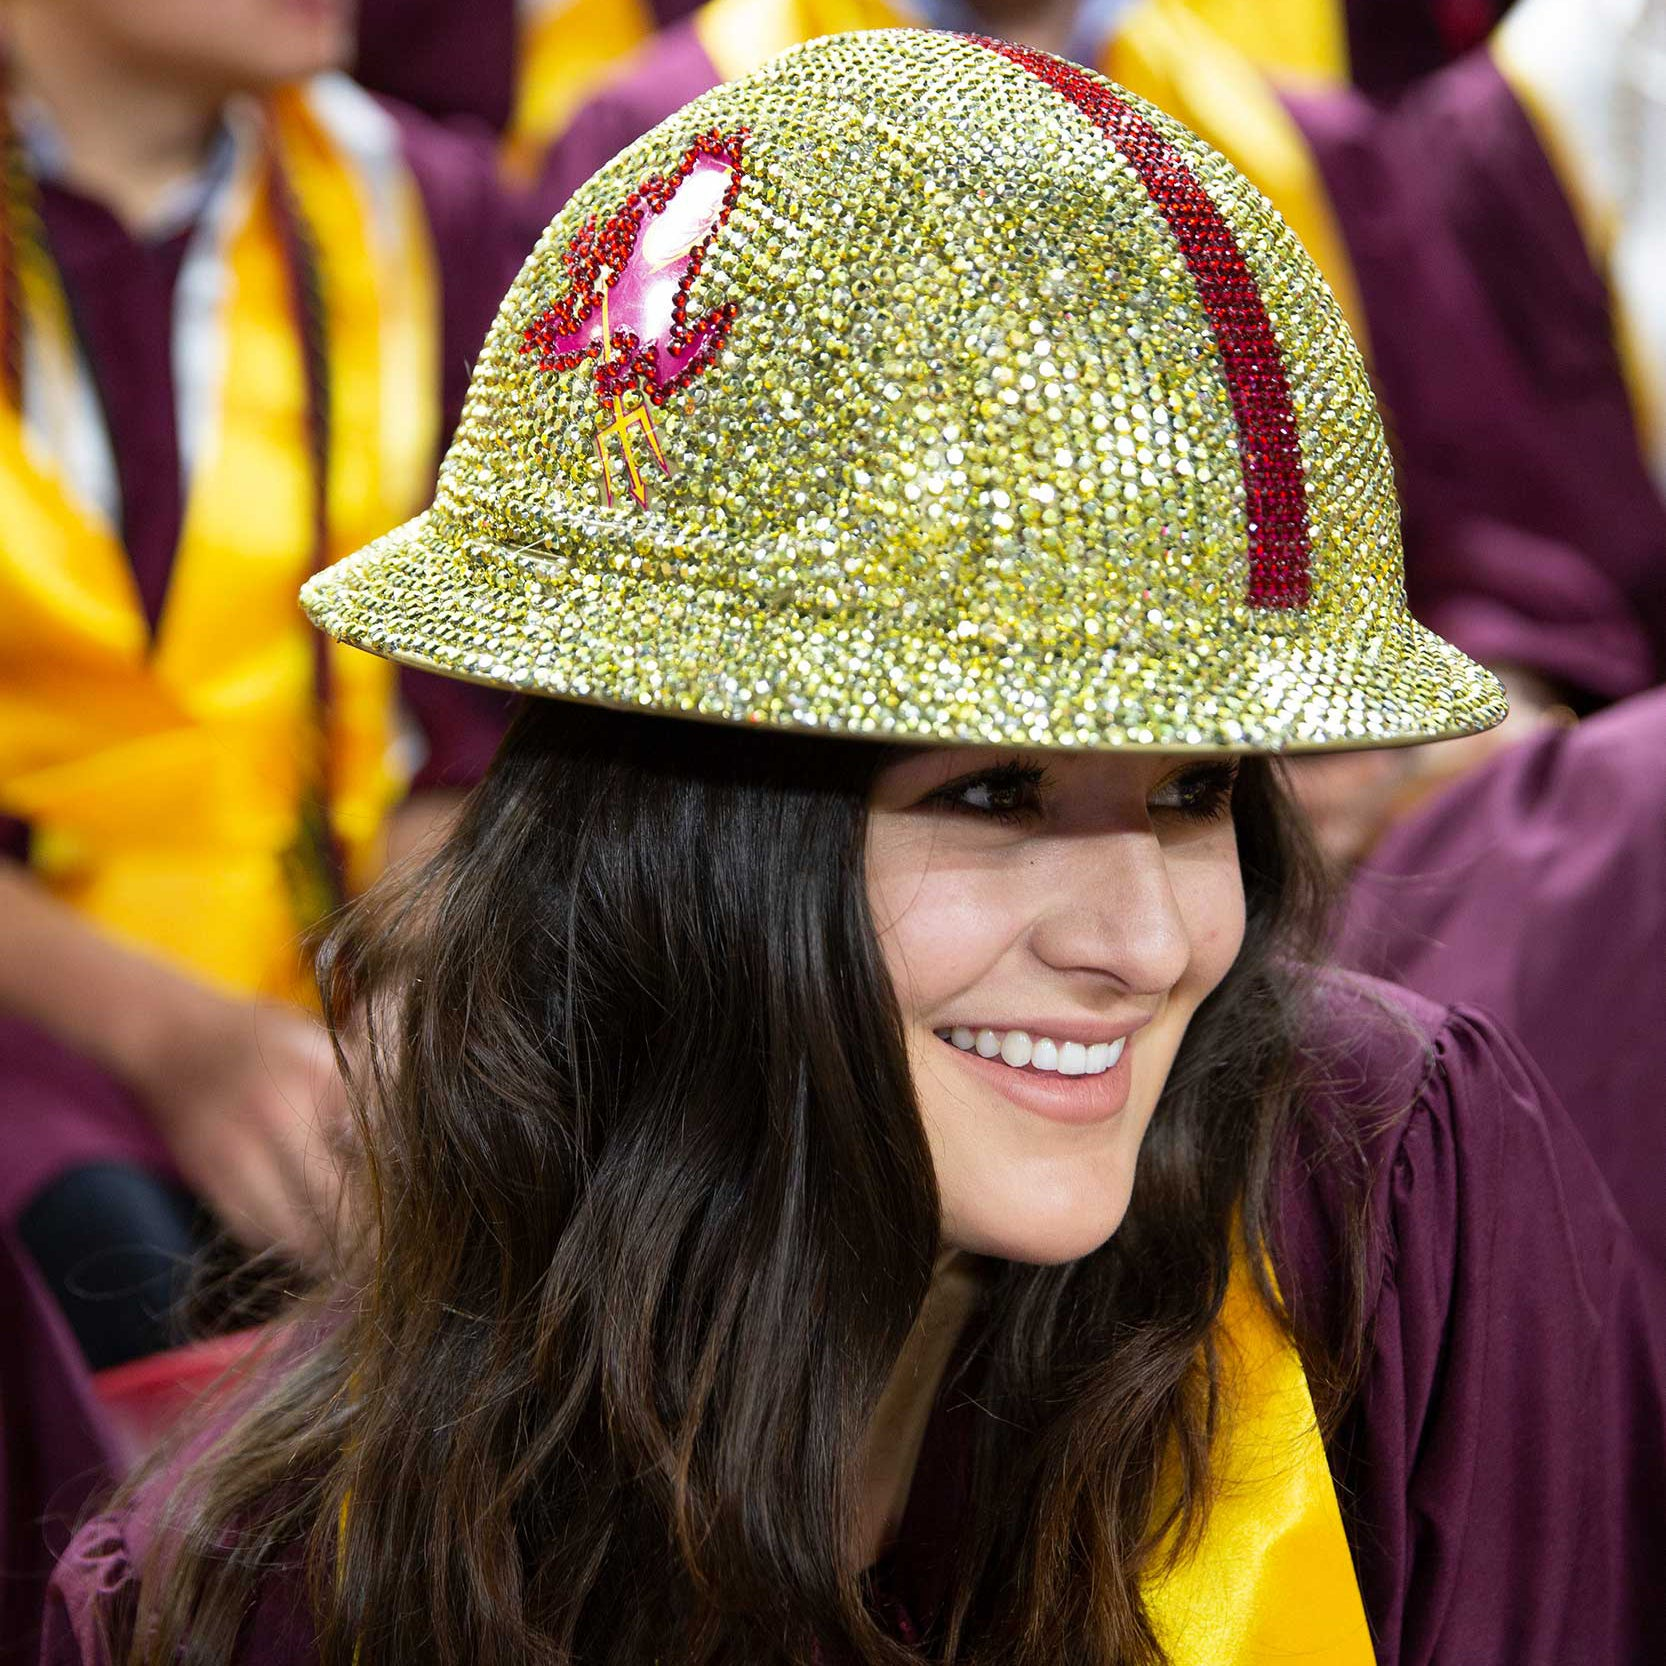 A construction graduate smiles as she shows off her bedazzled ASU hard hat